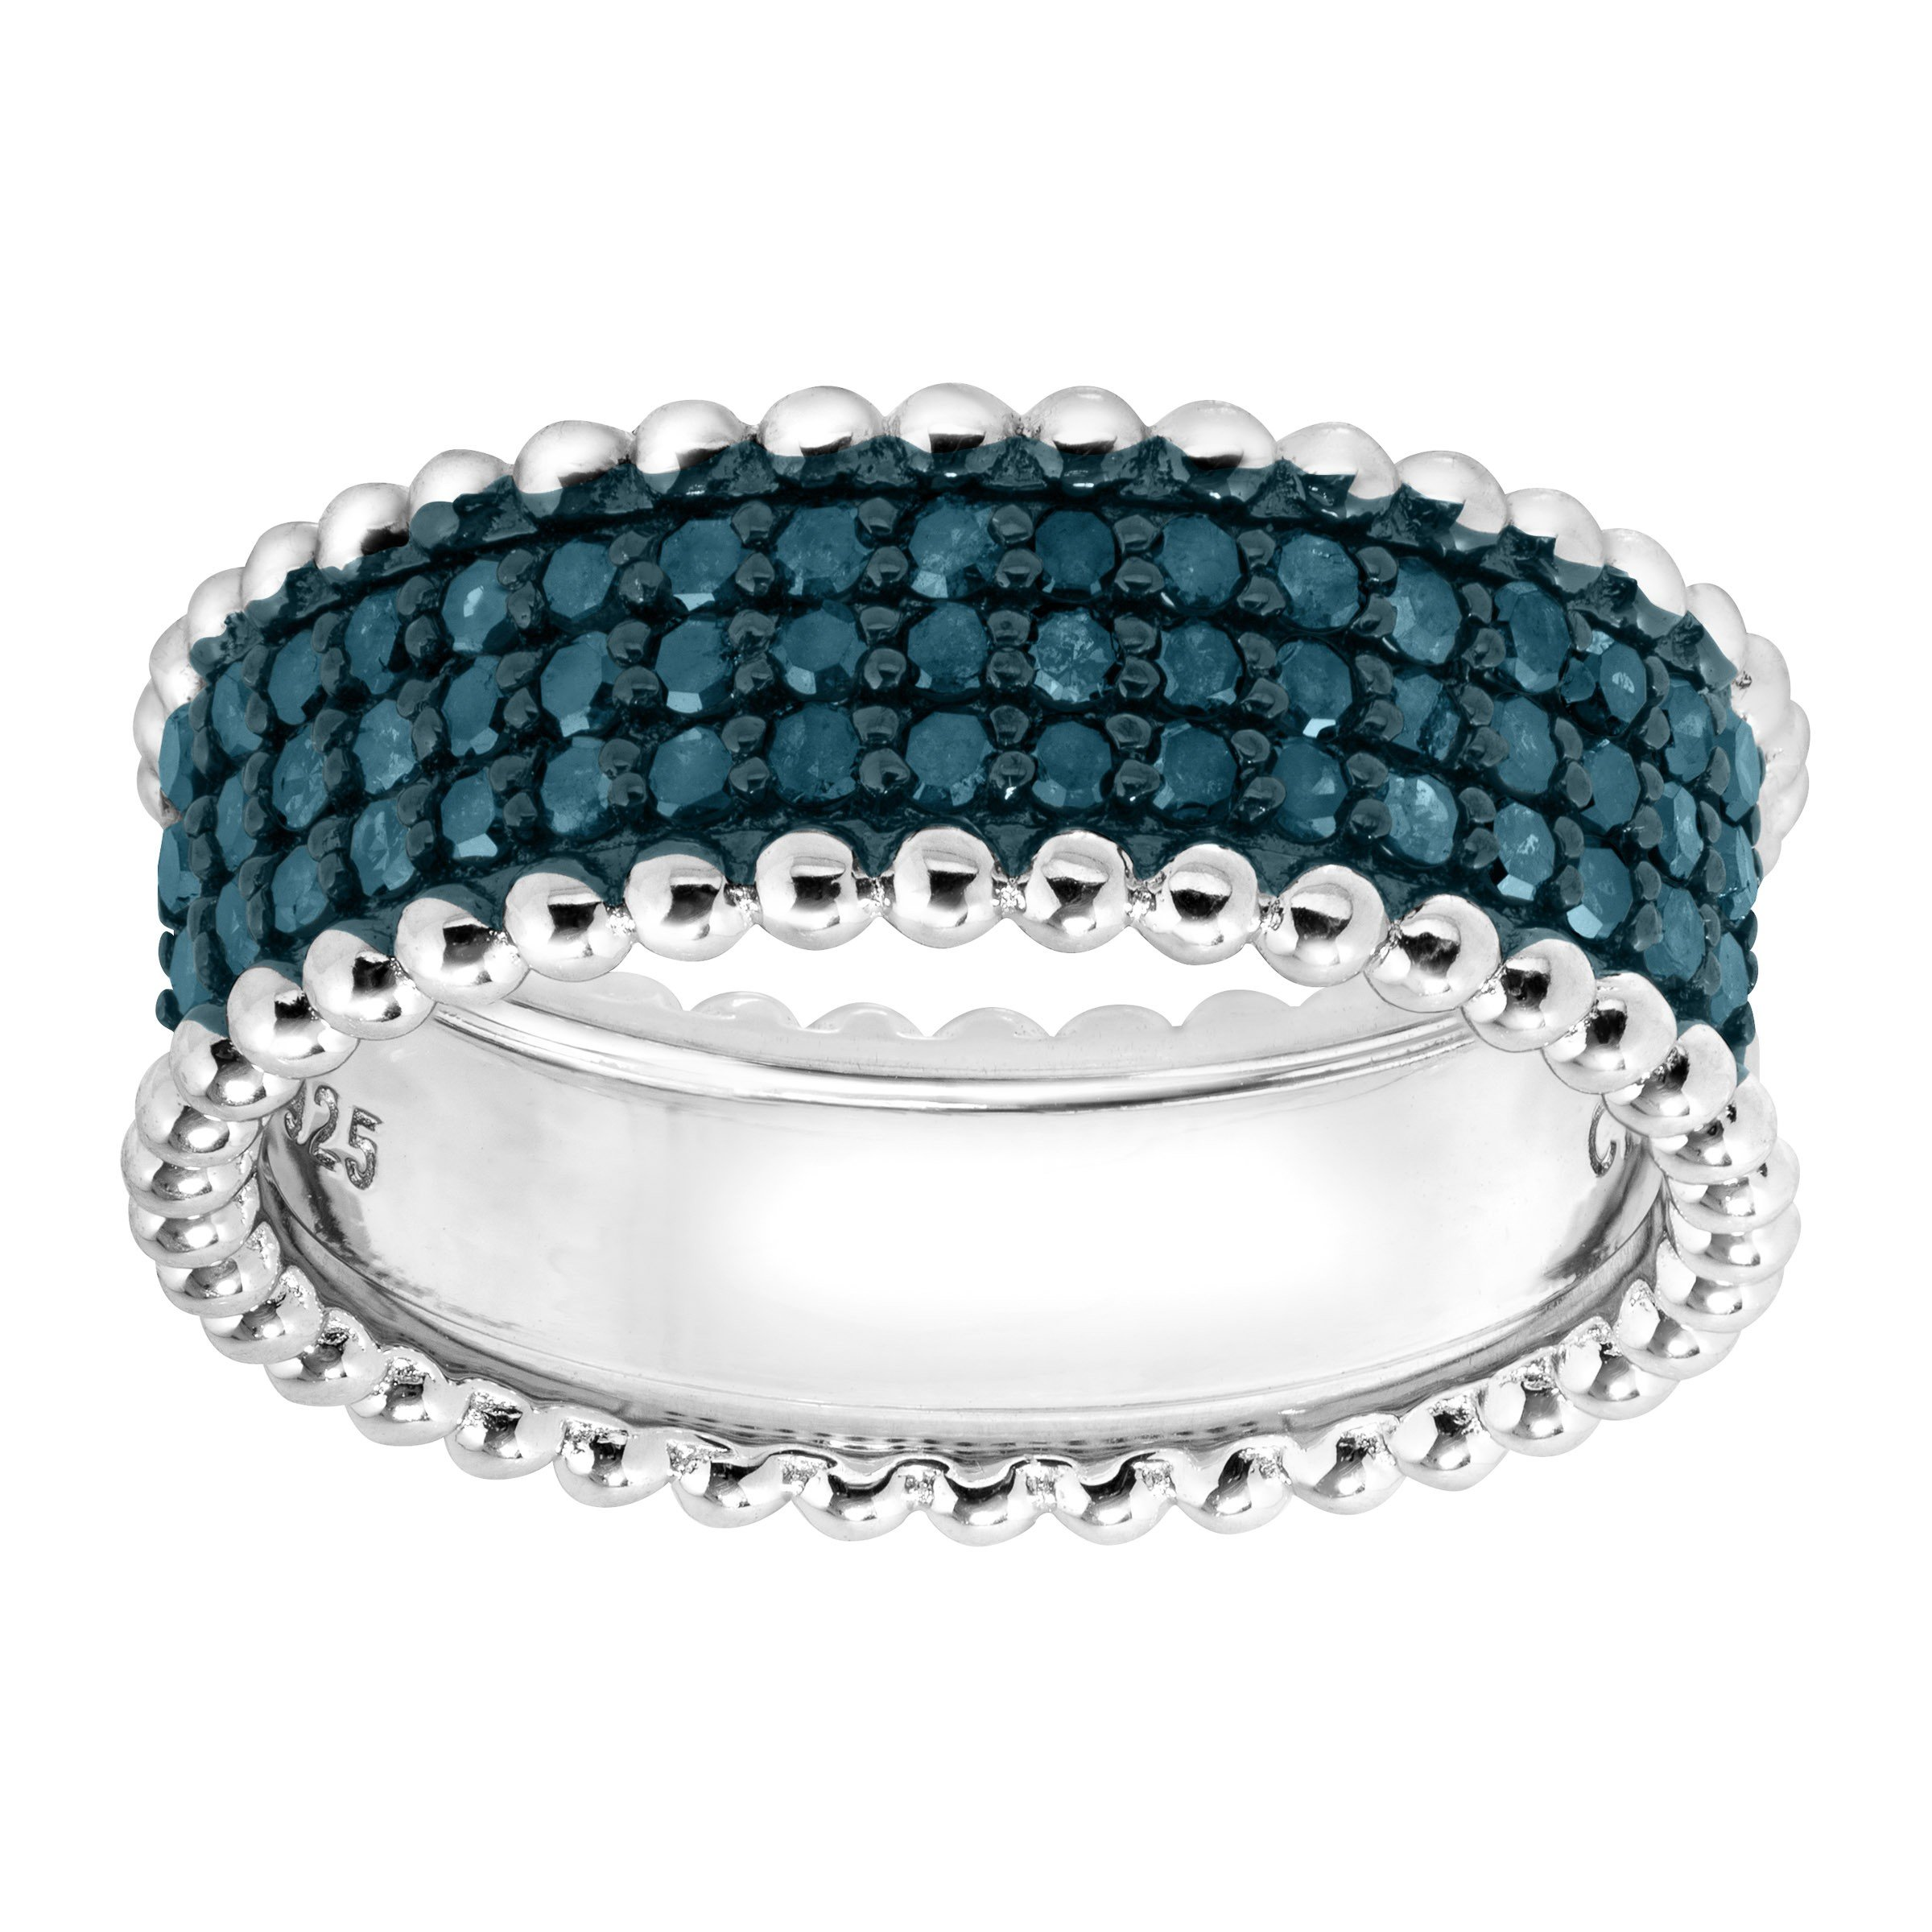 1/2 ct Blue Diamond Band Ring in Sterling Silver Size 6